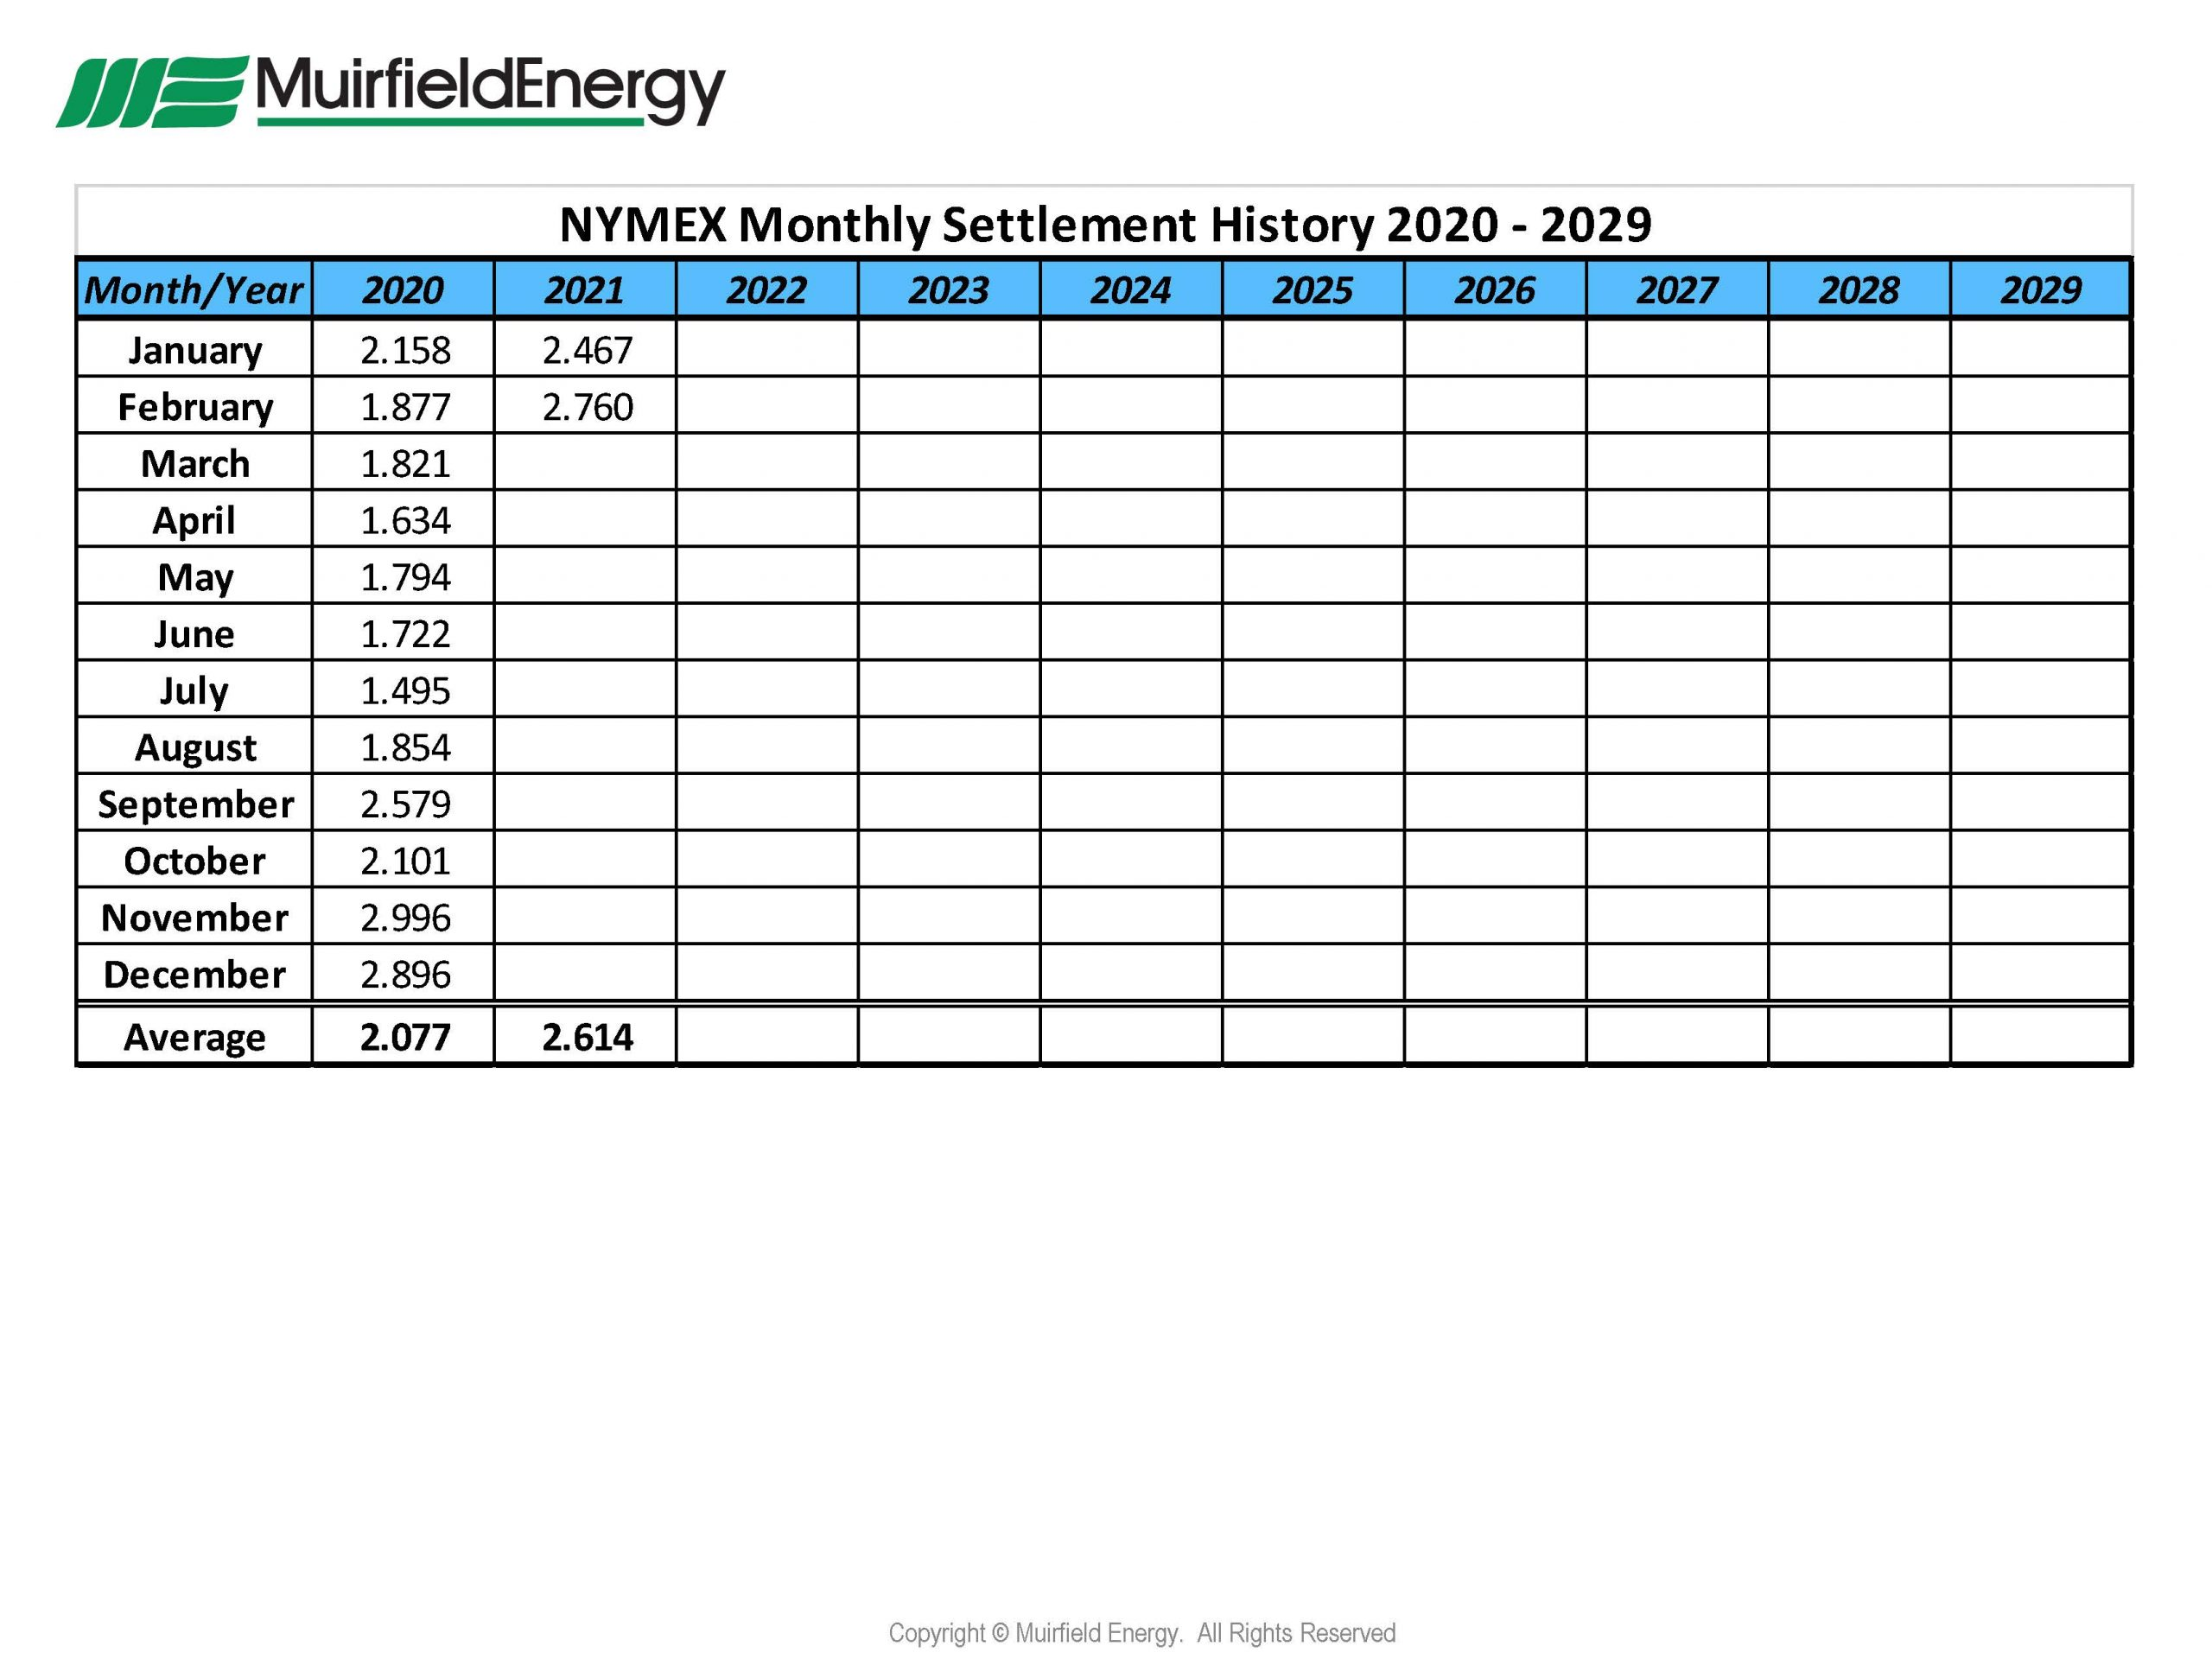 NYMEX-Natural-Gas-Monthly-Settlement-History-Prices-from-January-2020-through-February-2021